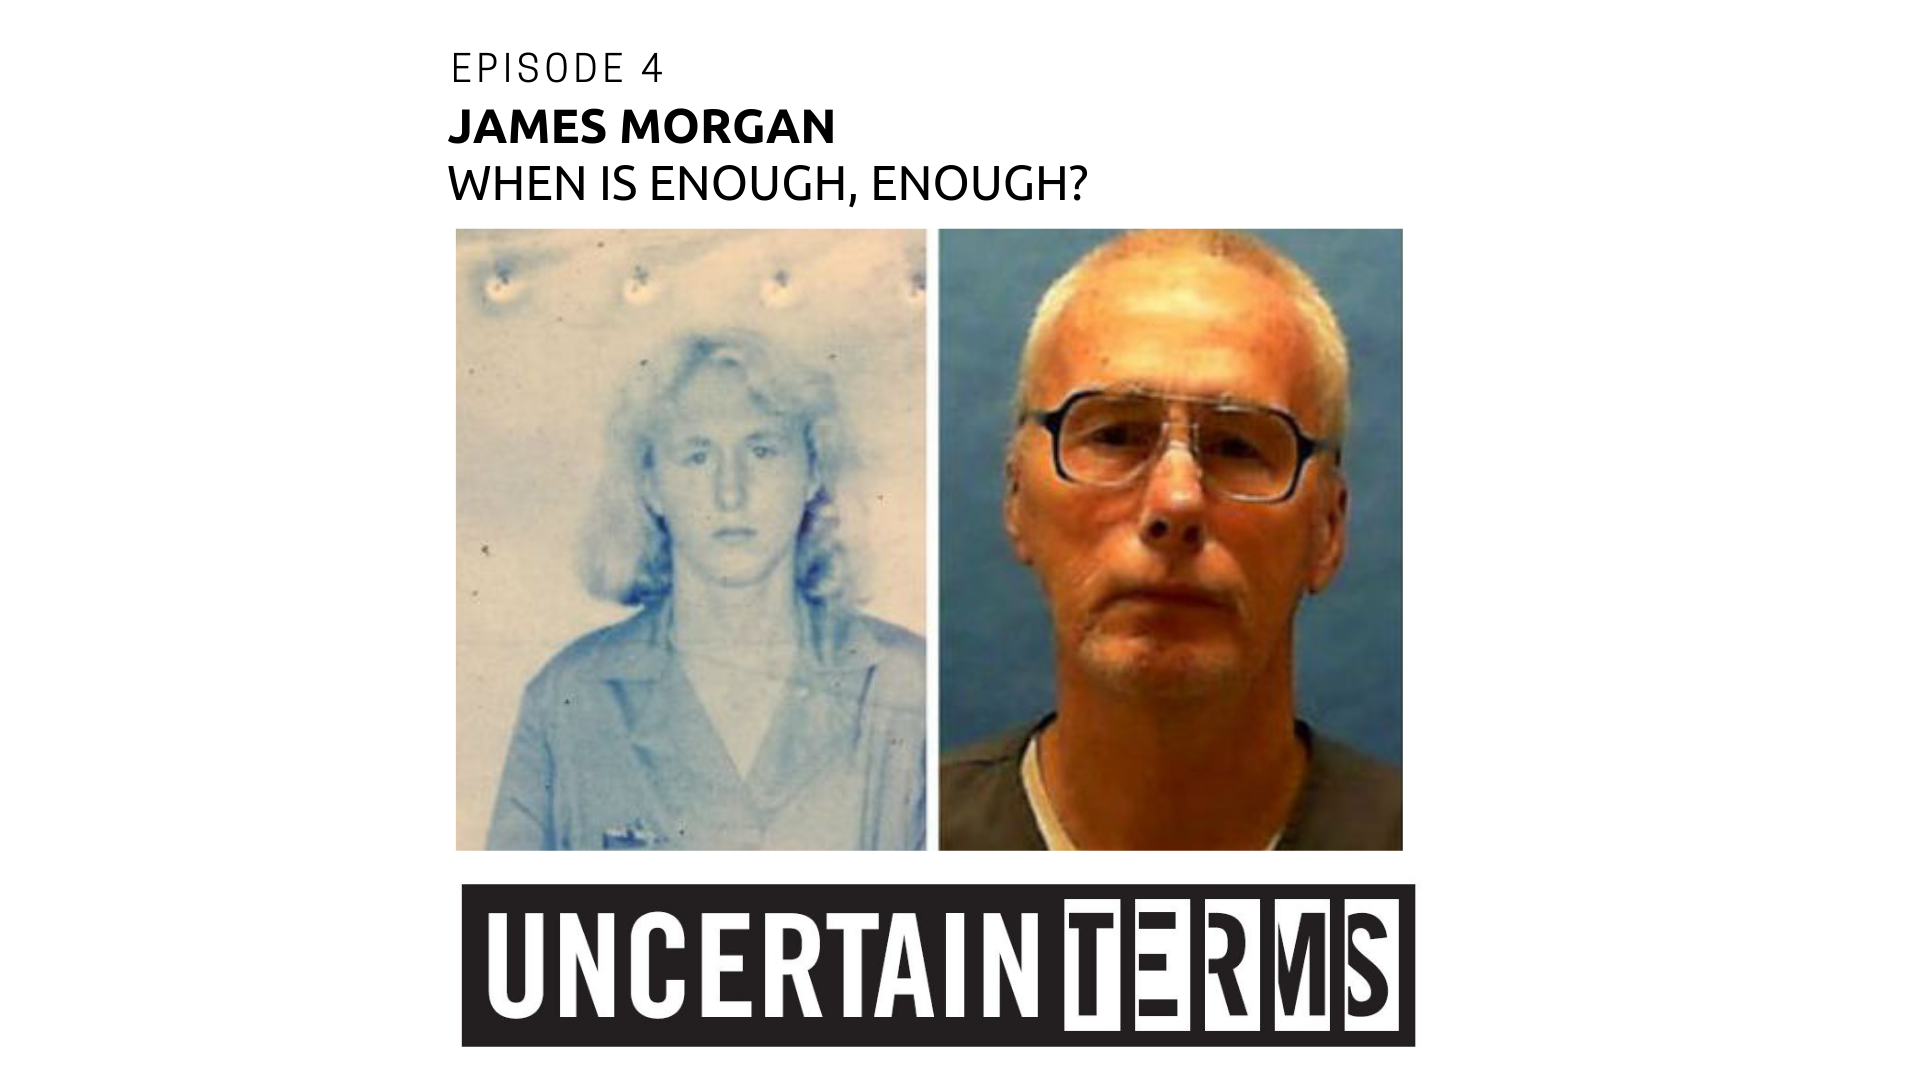 Uncertain Terms podcast | 1977 Stuart, Florida murder